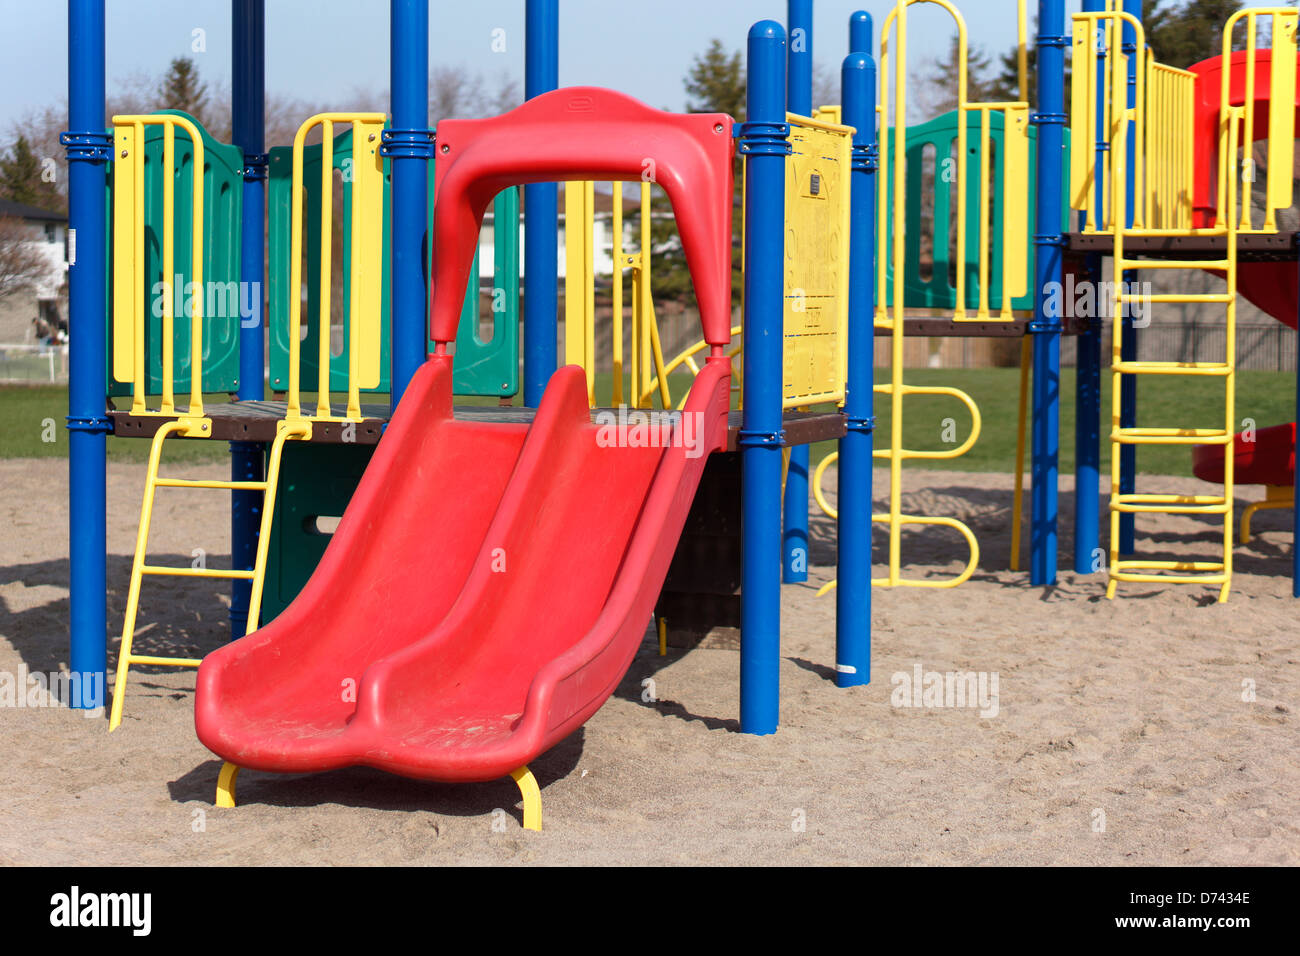 Children's Playground Slides, School Grounds Outdoors - Stock Image